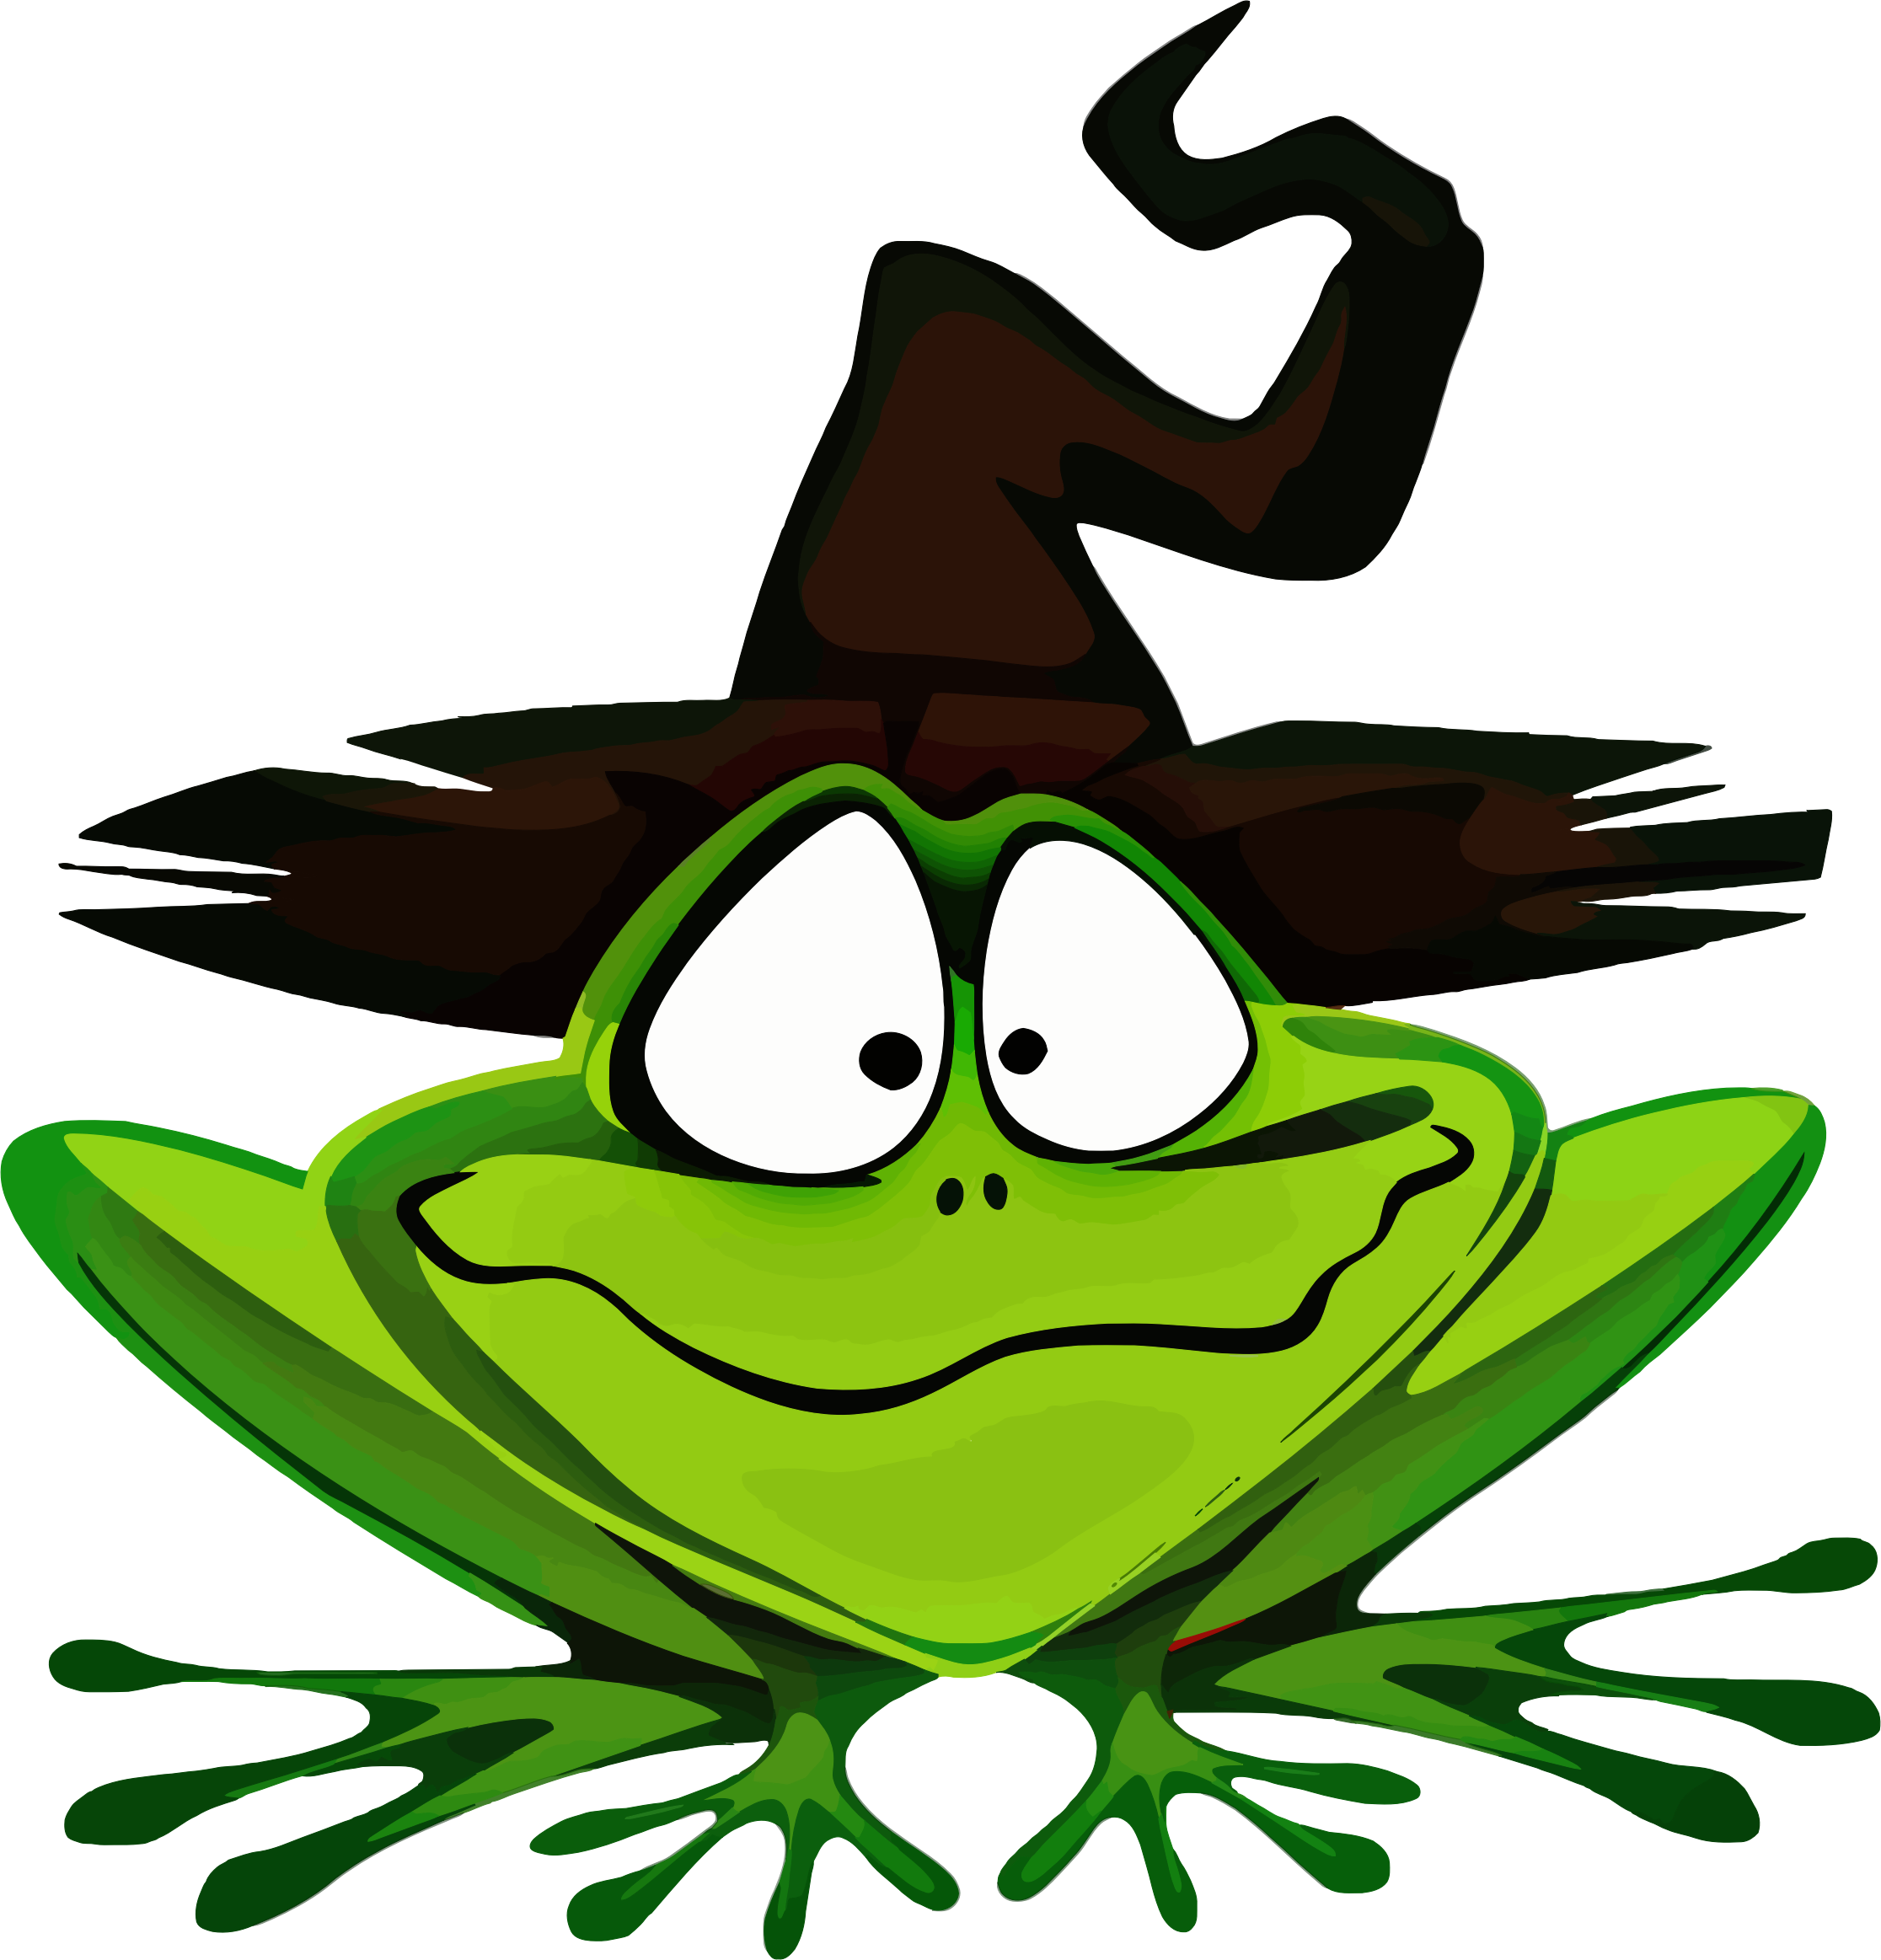 Halloween animal clipart svg transparent library Clipart - Frog Wearing Witch's Hat svg transparent library